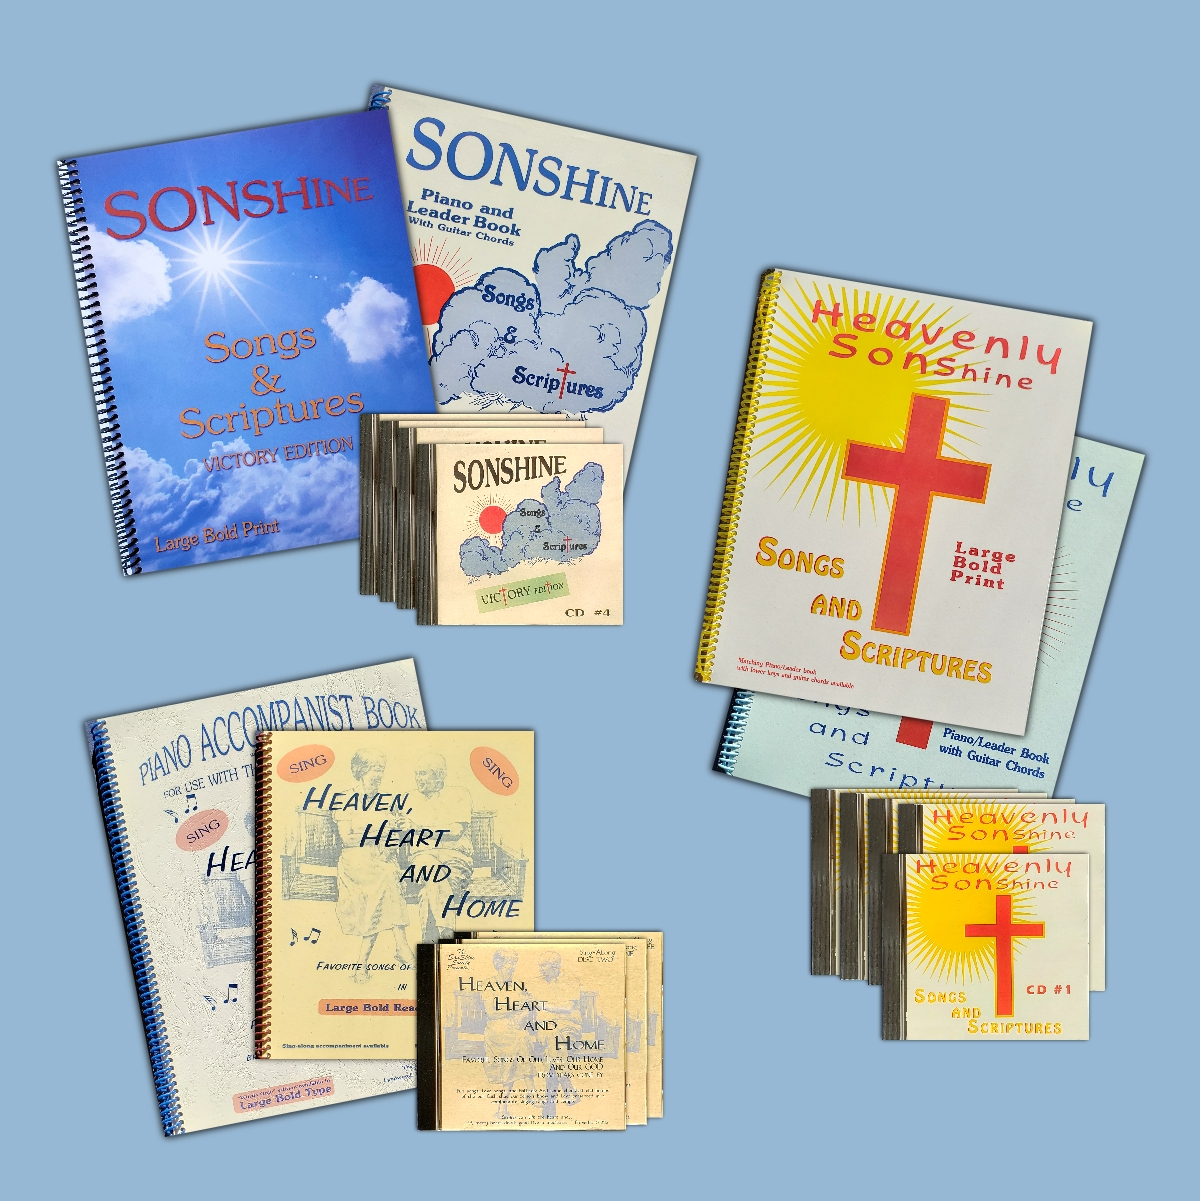 SonShine SongBooks and CDs